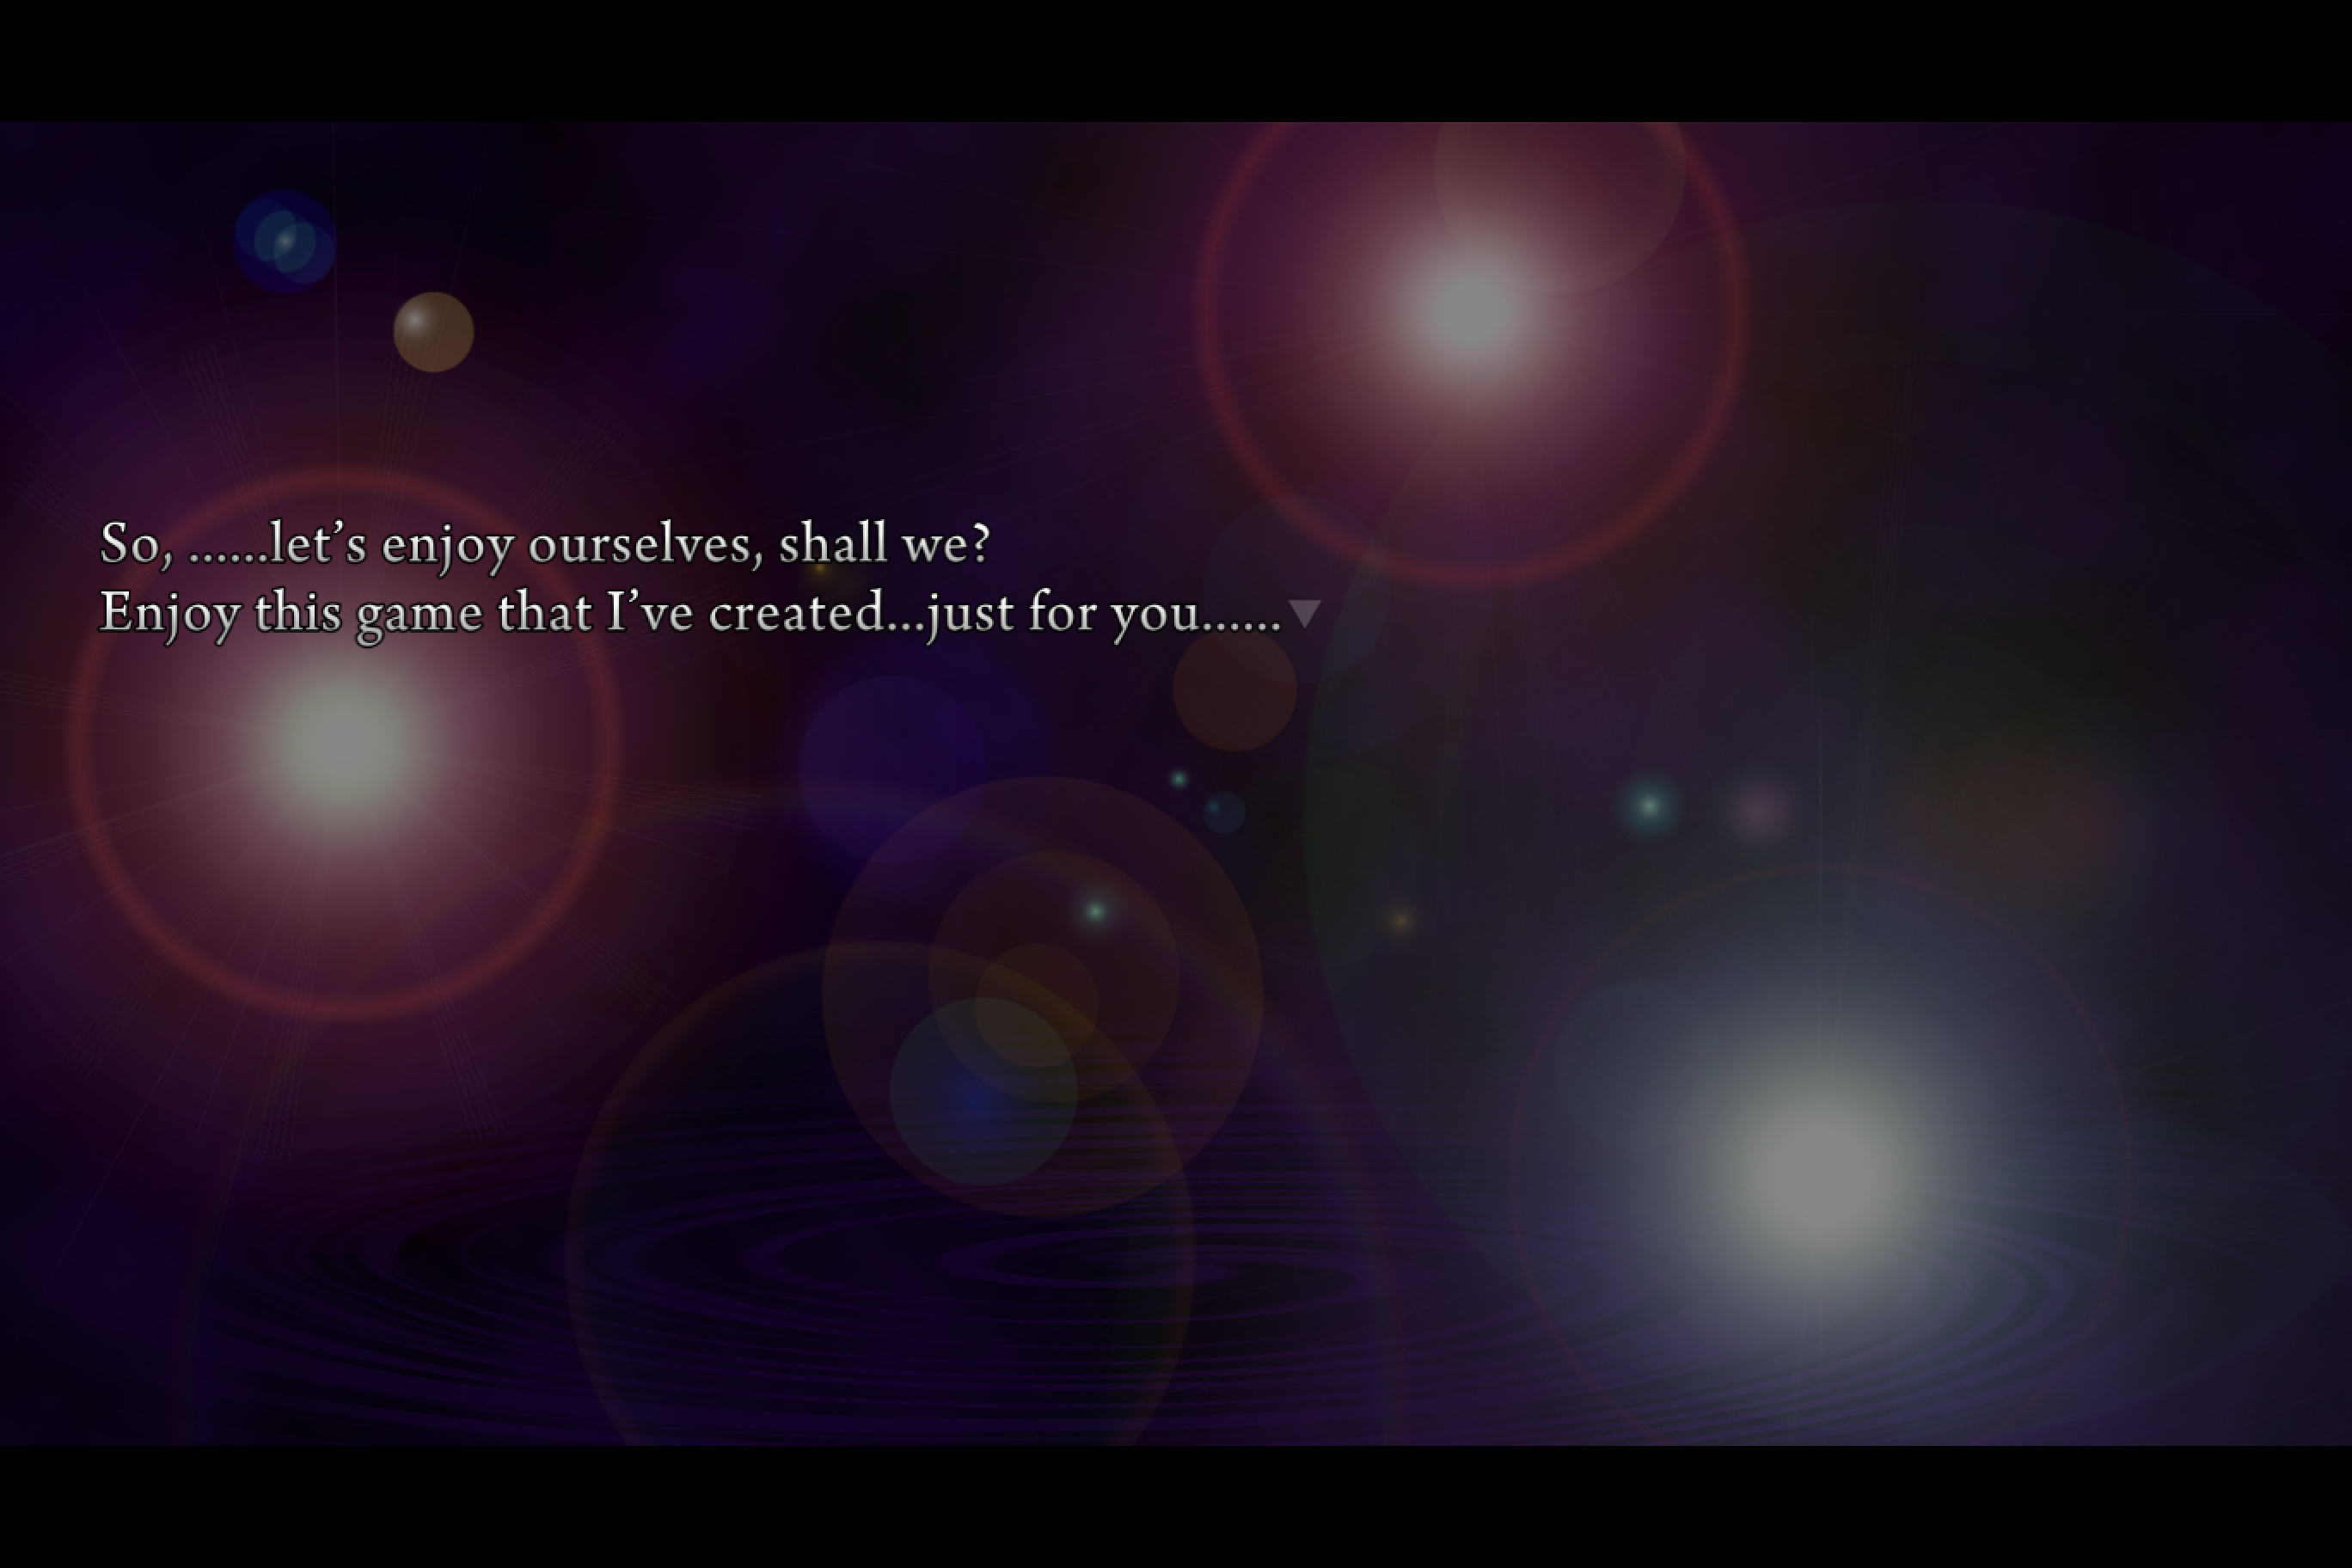 Umineko no Naku Koro ni Chiru ~Nocturne of Truth and Illusions~ (8.2a) 6_1_2020 11_20_34 PM.png